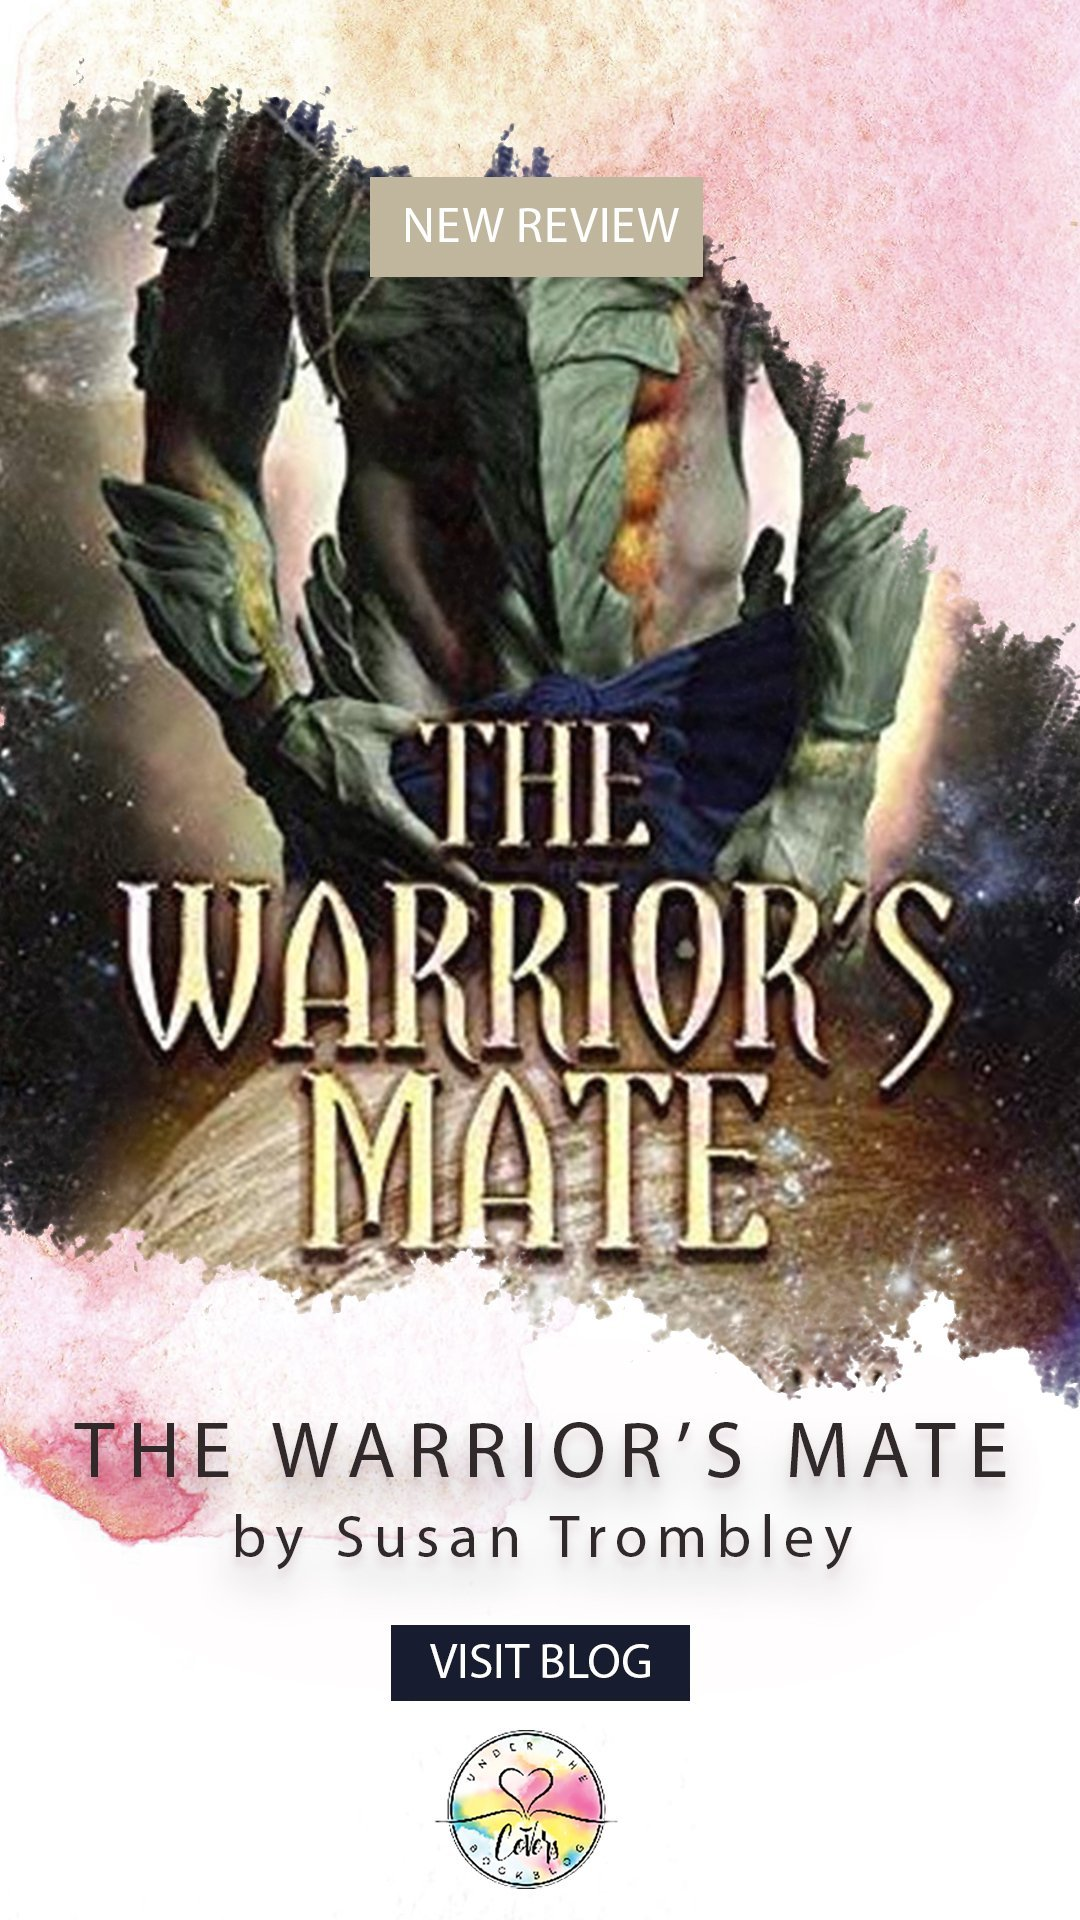 Review: The Warrior's Mate by Susan Trombley